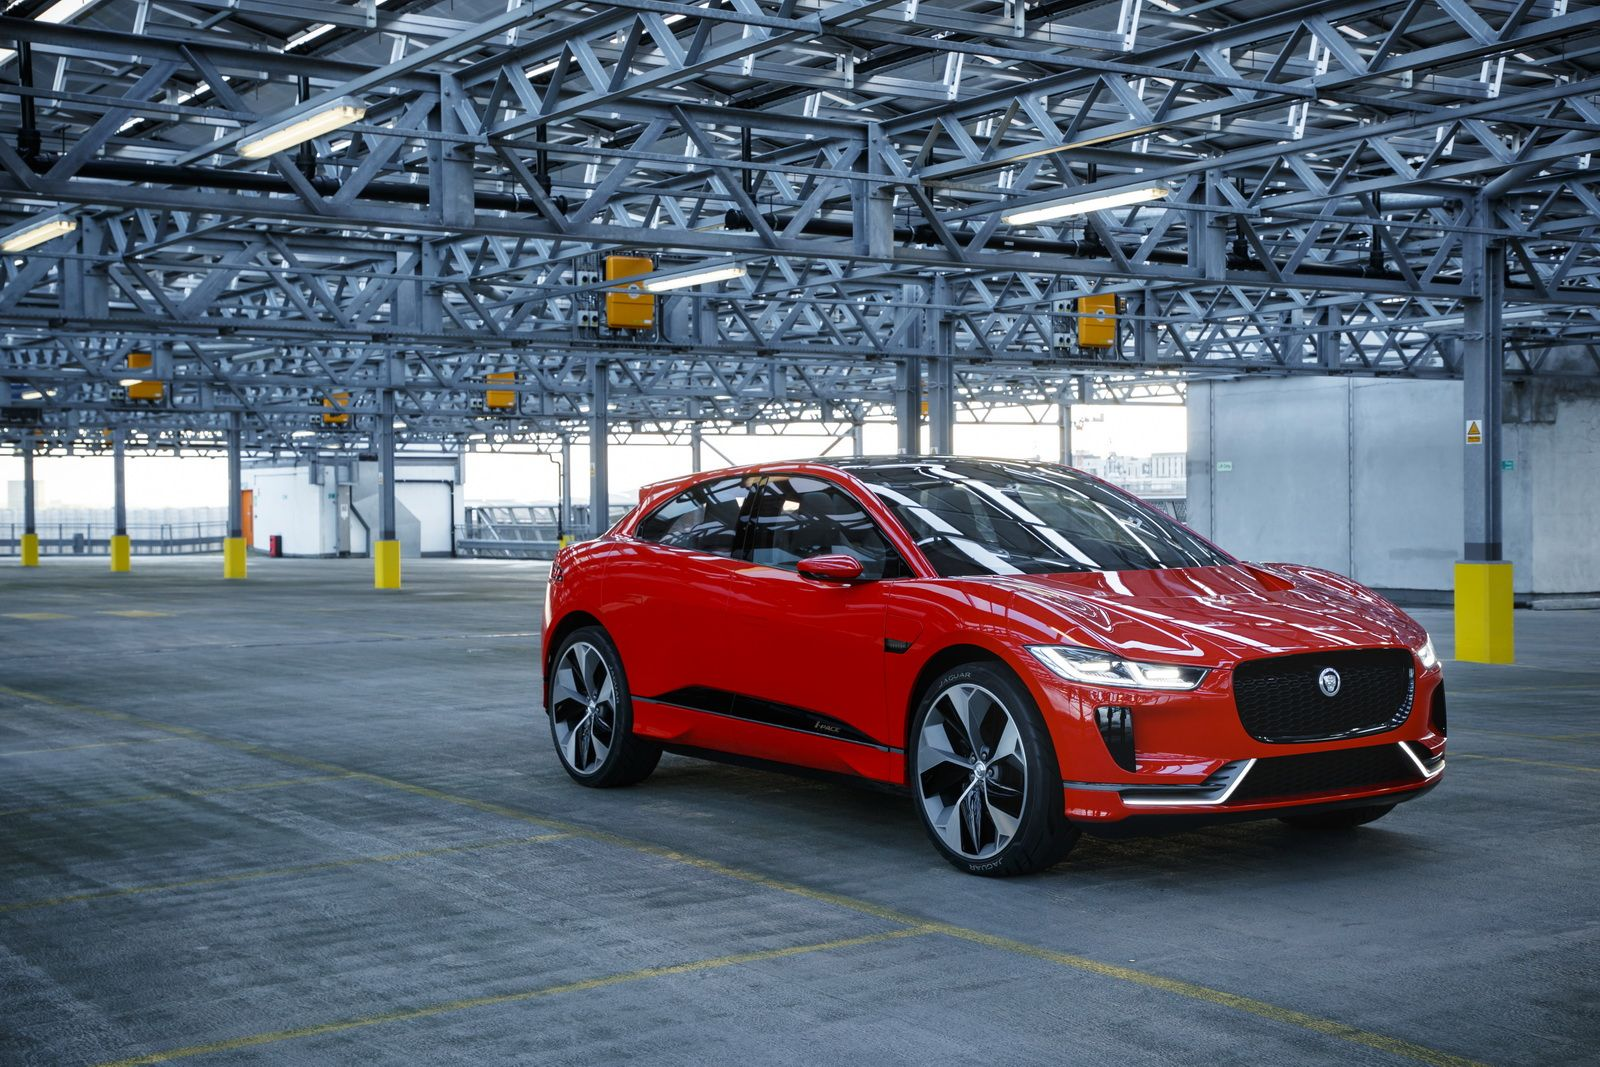 Jaguar I Pace Driven In London Is A Sign Of Things To Come 95